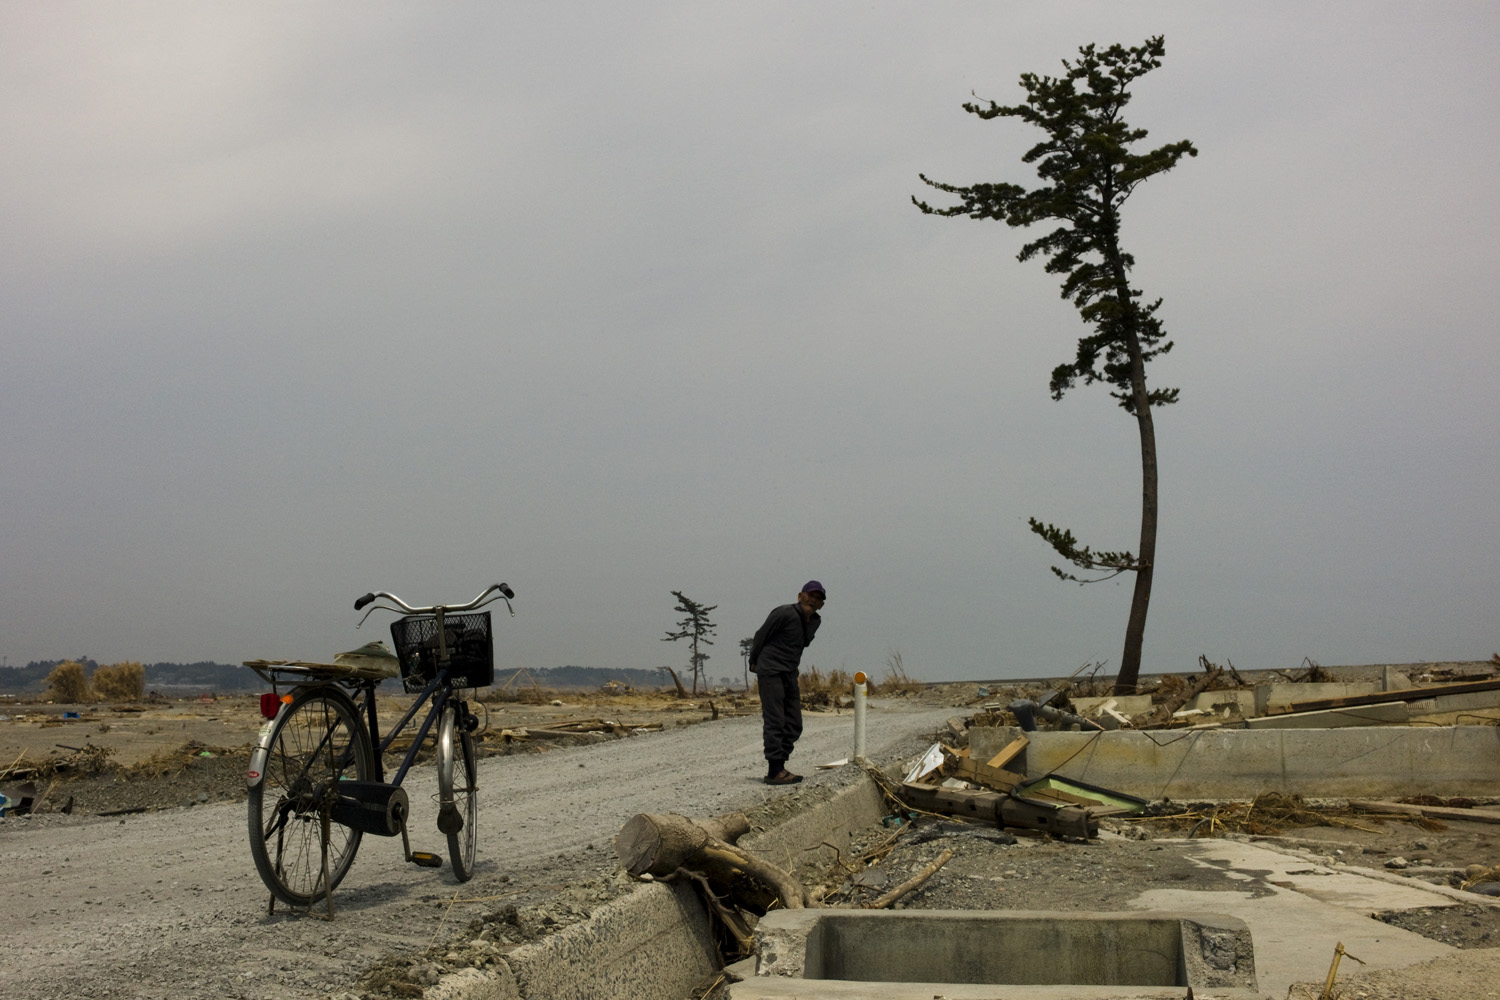 April 16, 2011. An old Japanese man surveys the area devastated by a March earthquake and tsunami.